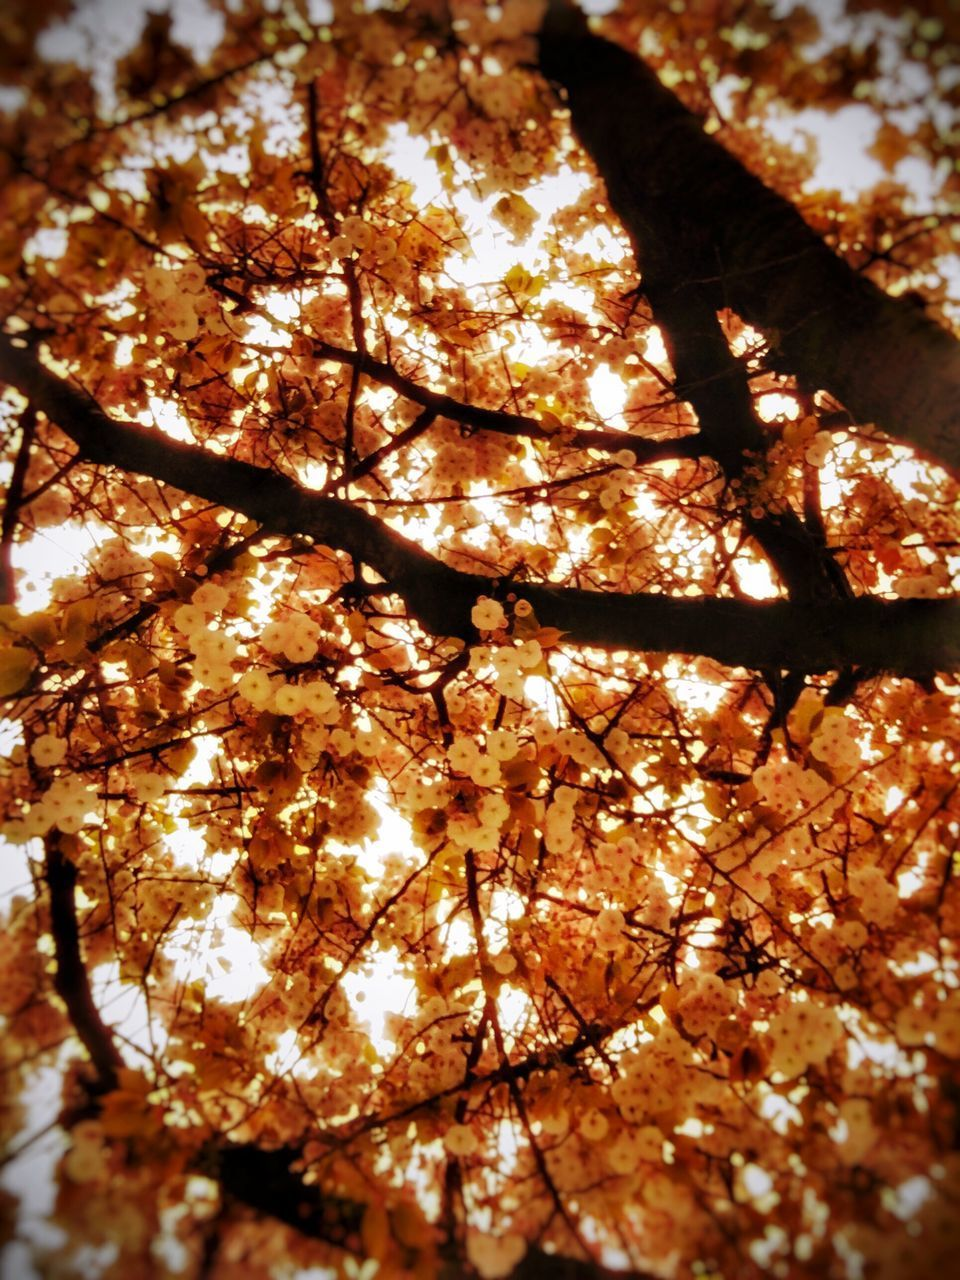 autumn, change, season, tree, orange color, nature, branch, leaf, close-up, low angle view, beauty in nature, sunlight, growth, outdoors, focus on foreground, full frame, backgrounds, leaves, day, maple leaf